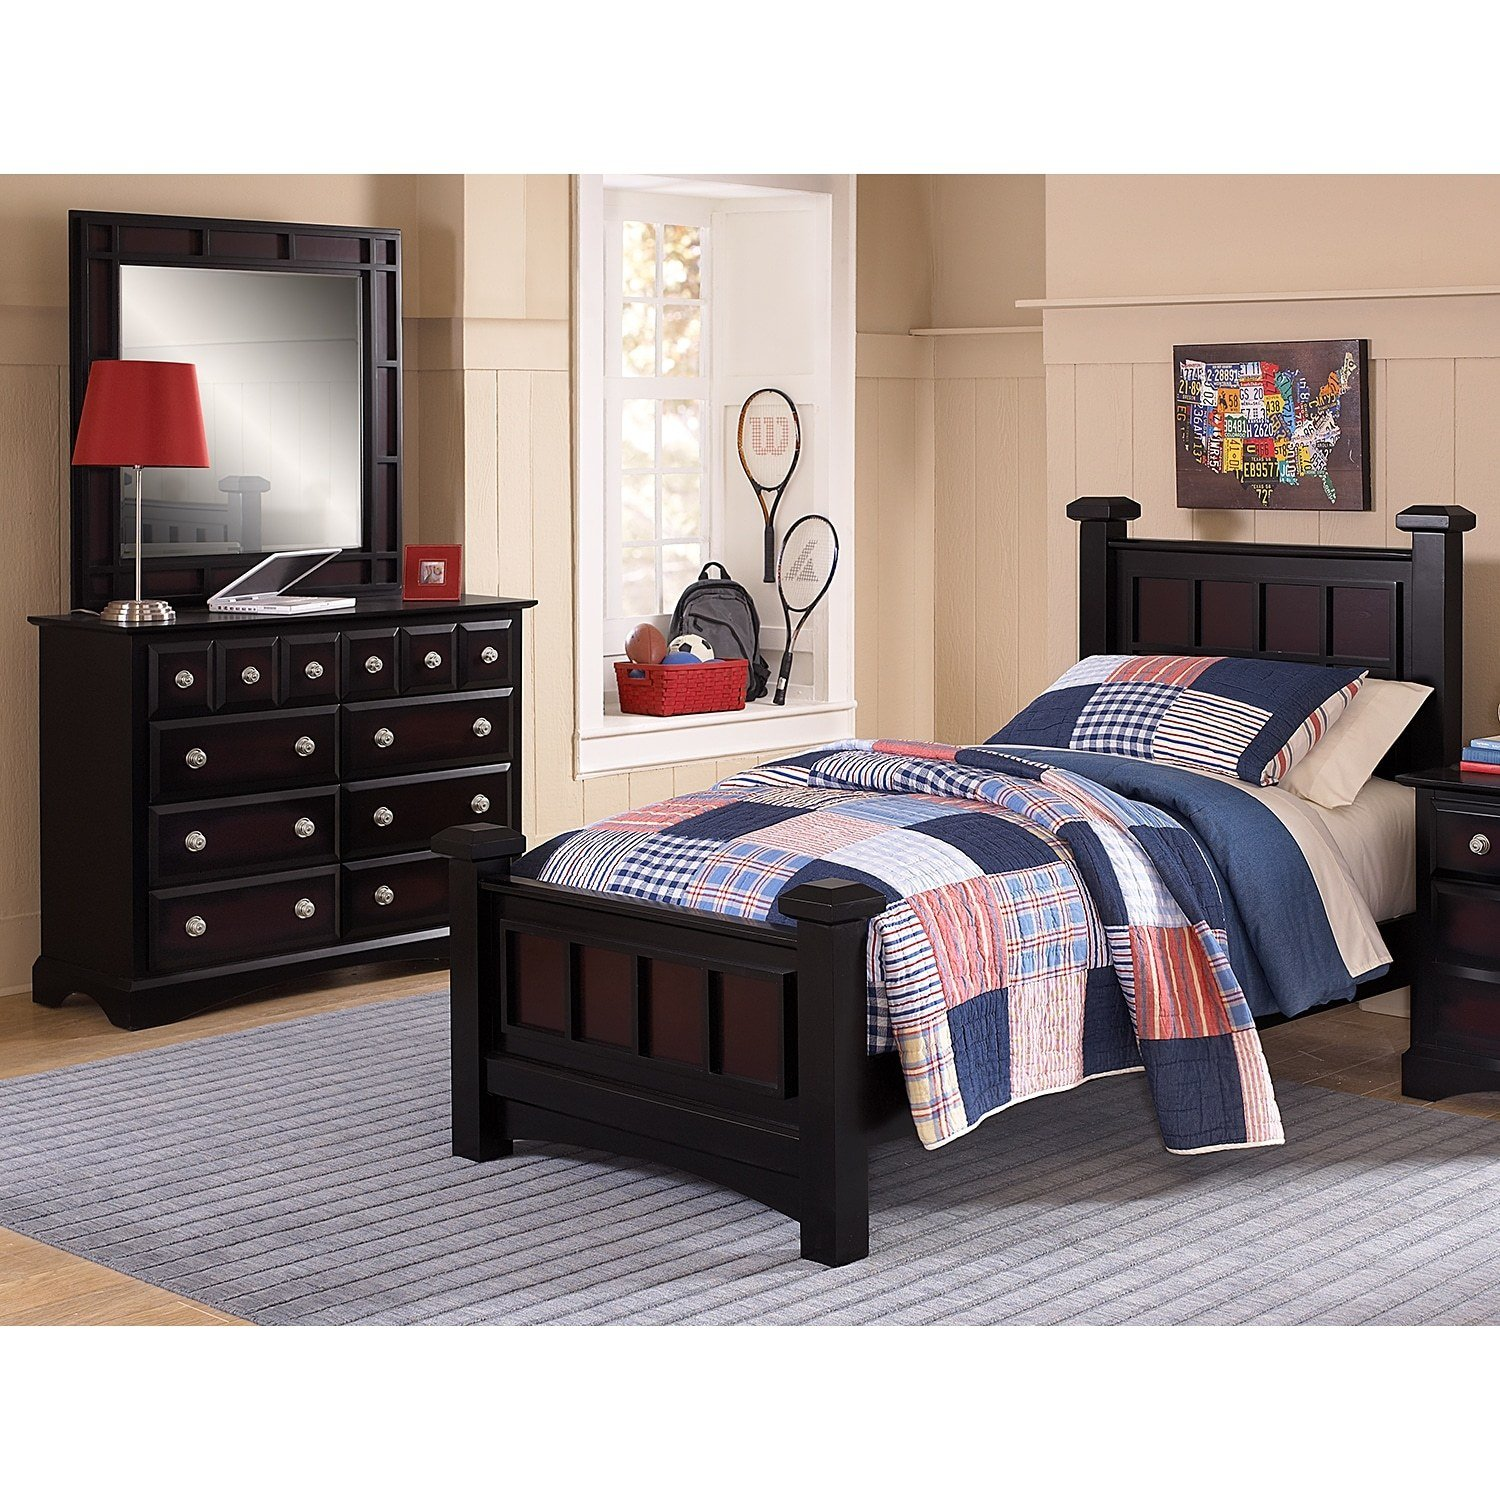 Best Winchester 5 Piece Twin Bedroom Set Black And Burnished With Pictures